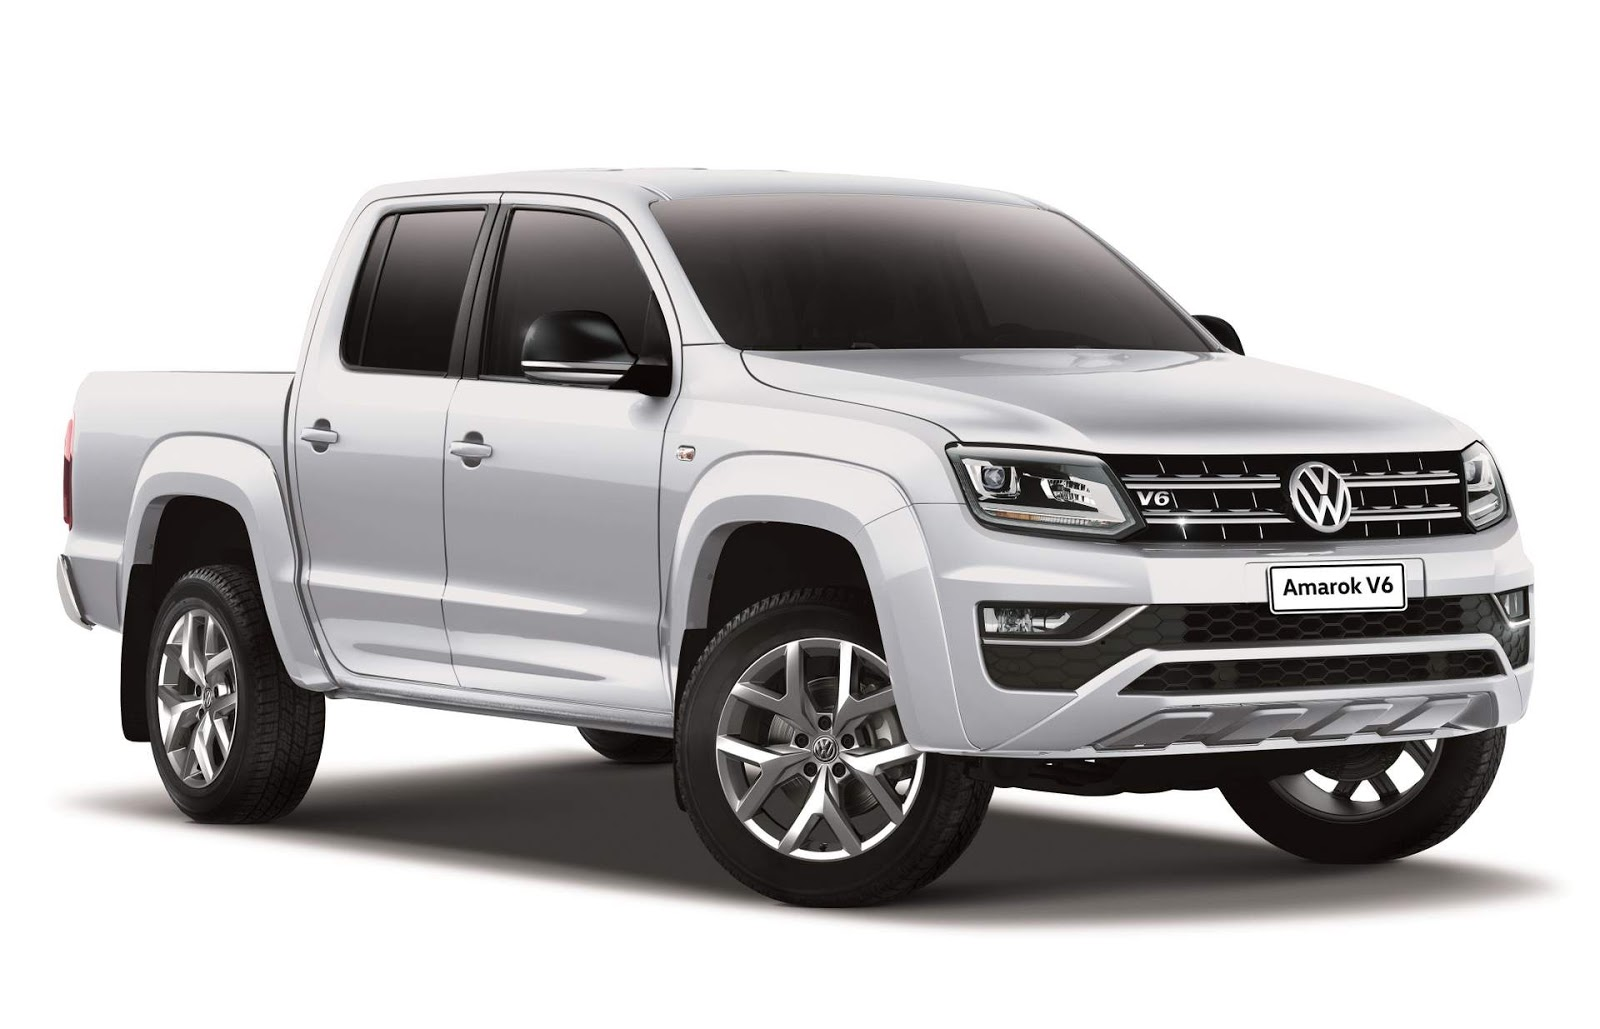 amarok v6 esgota em 1 dia o que explica o sucesso car blog br. Black Bedroom Furniture Sets. Home Design Ideas